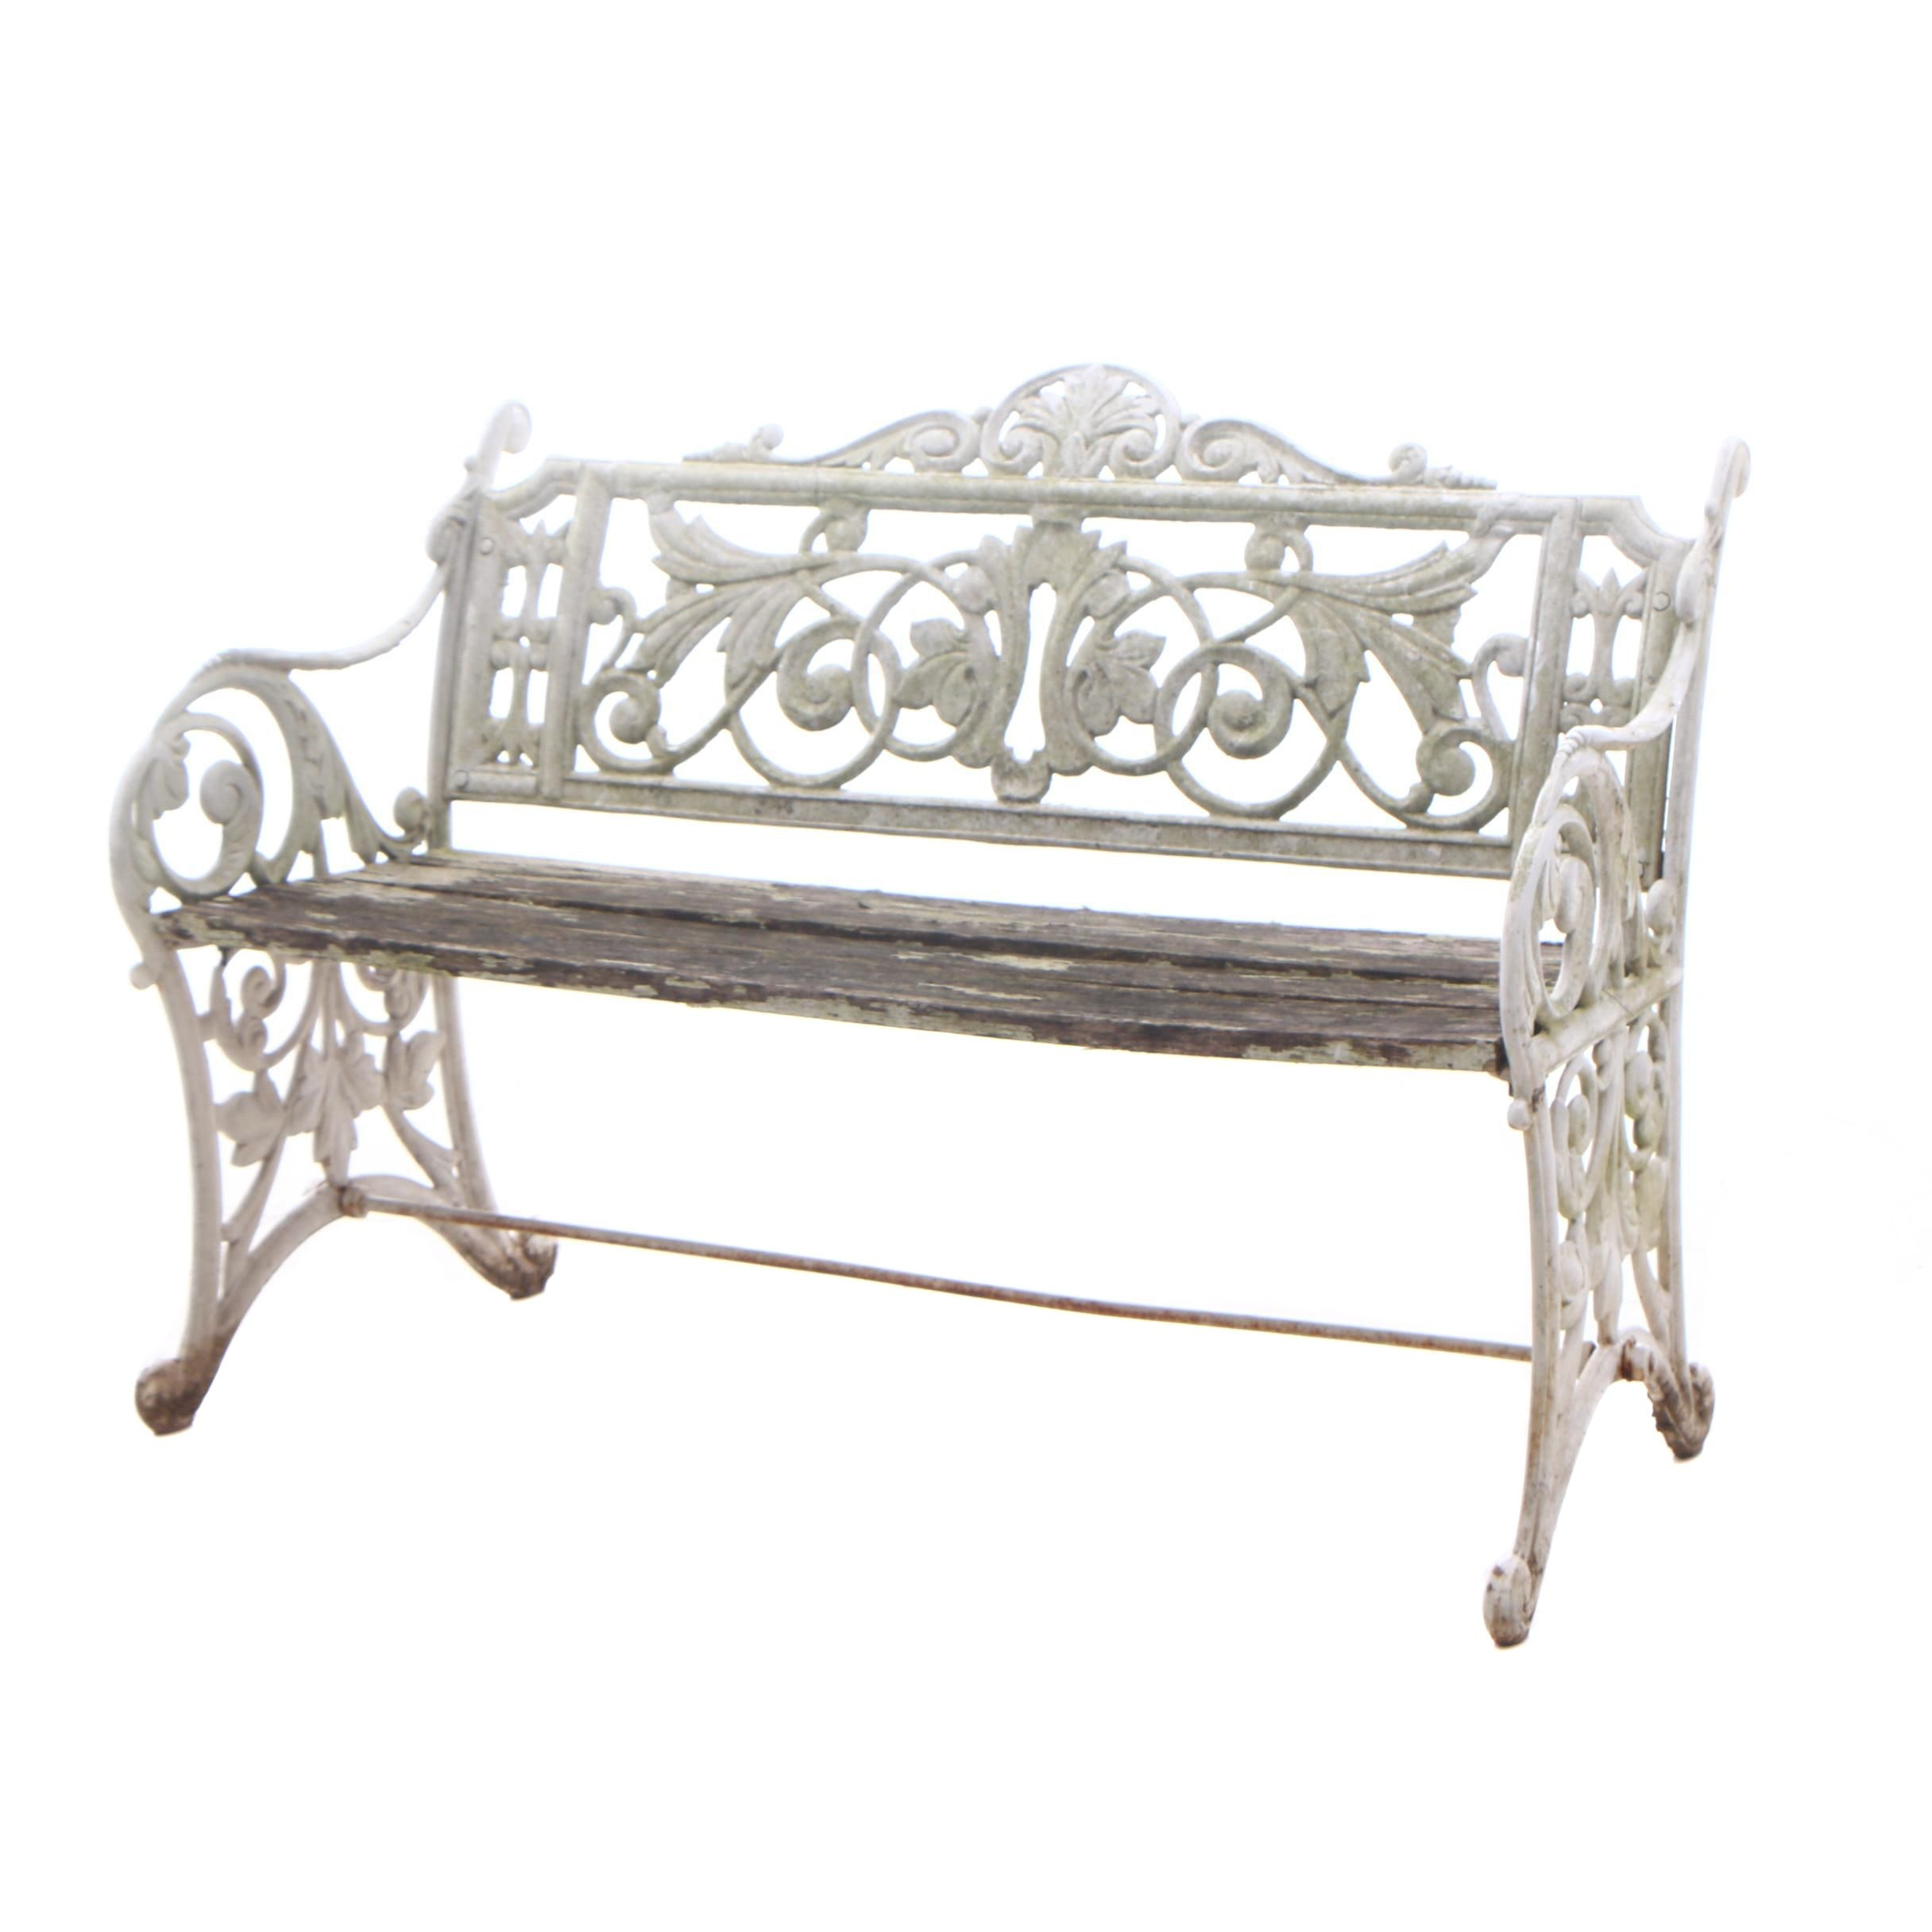 Victorian Style White Painted Cast Iron Garden Bench